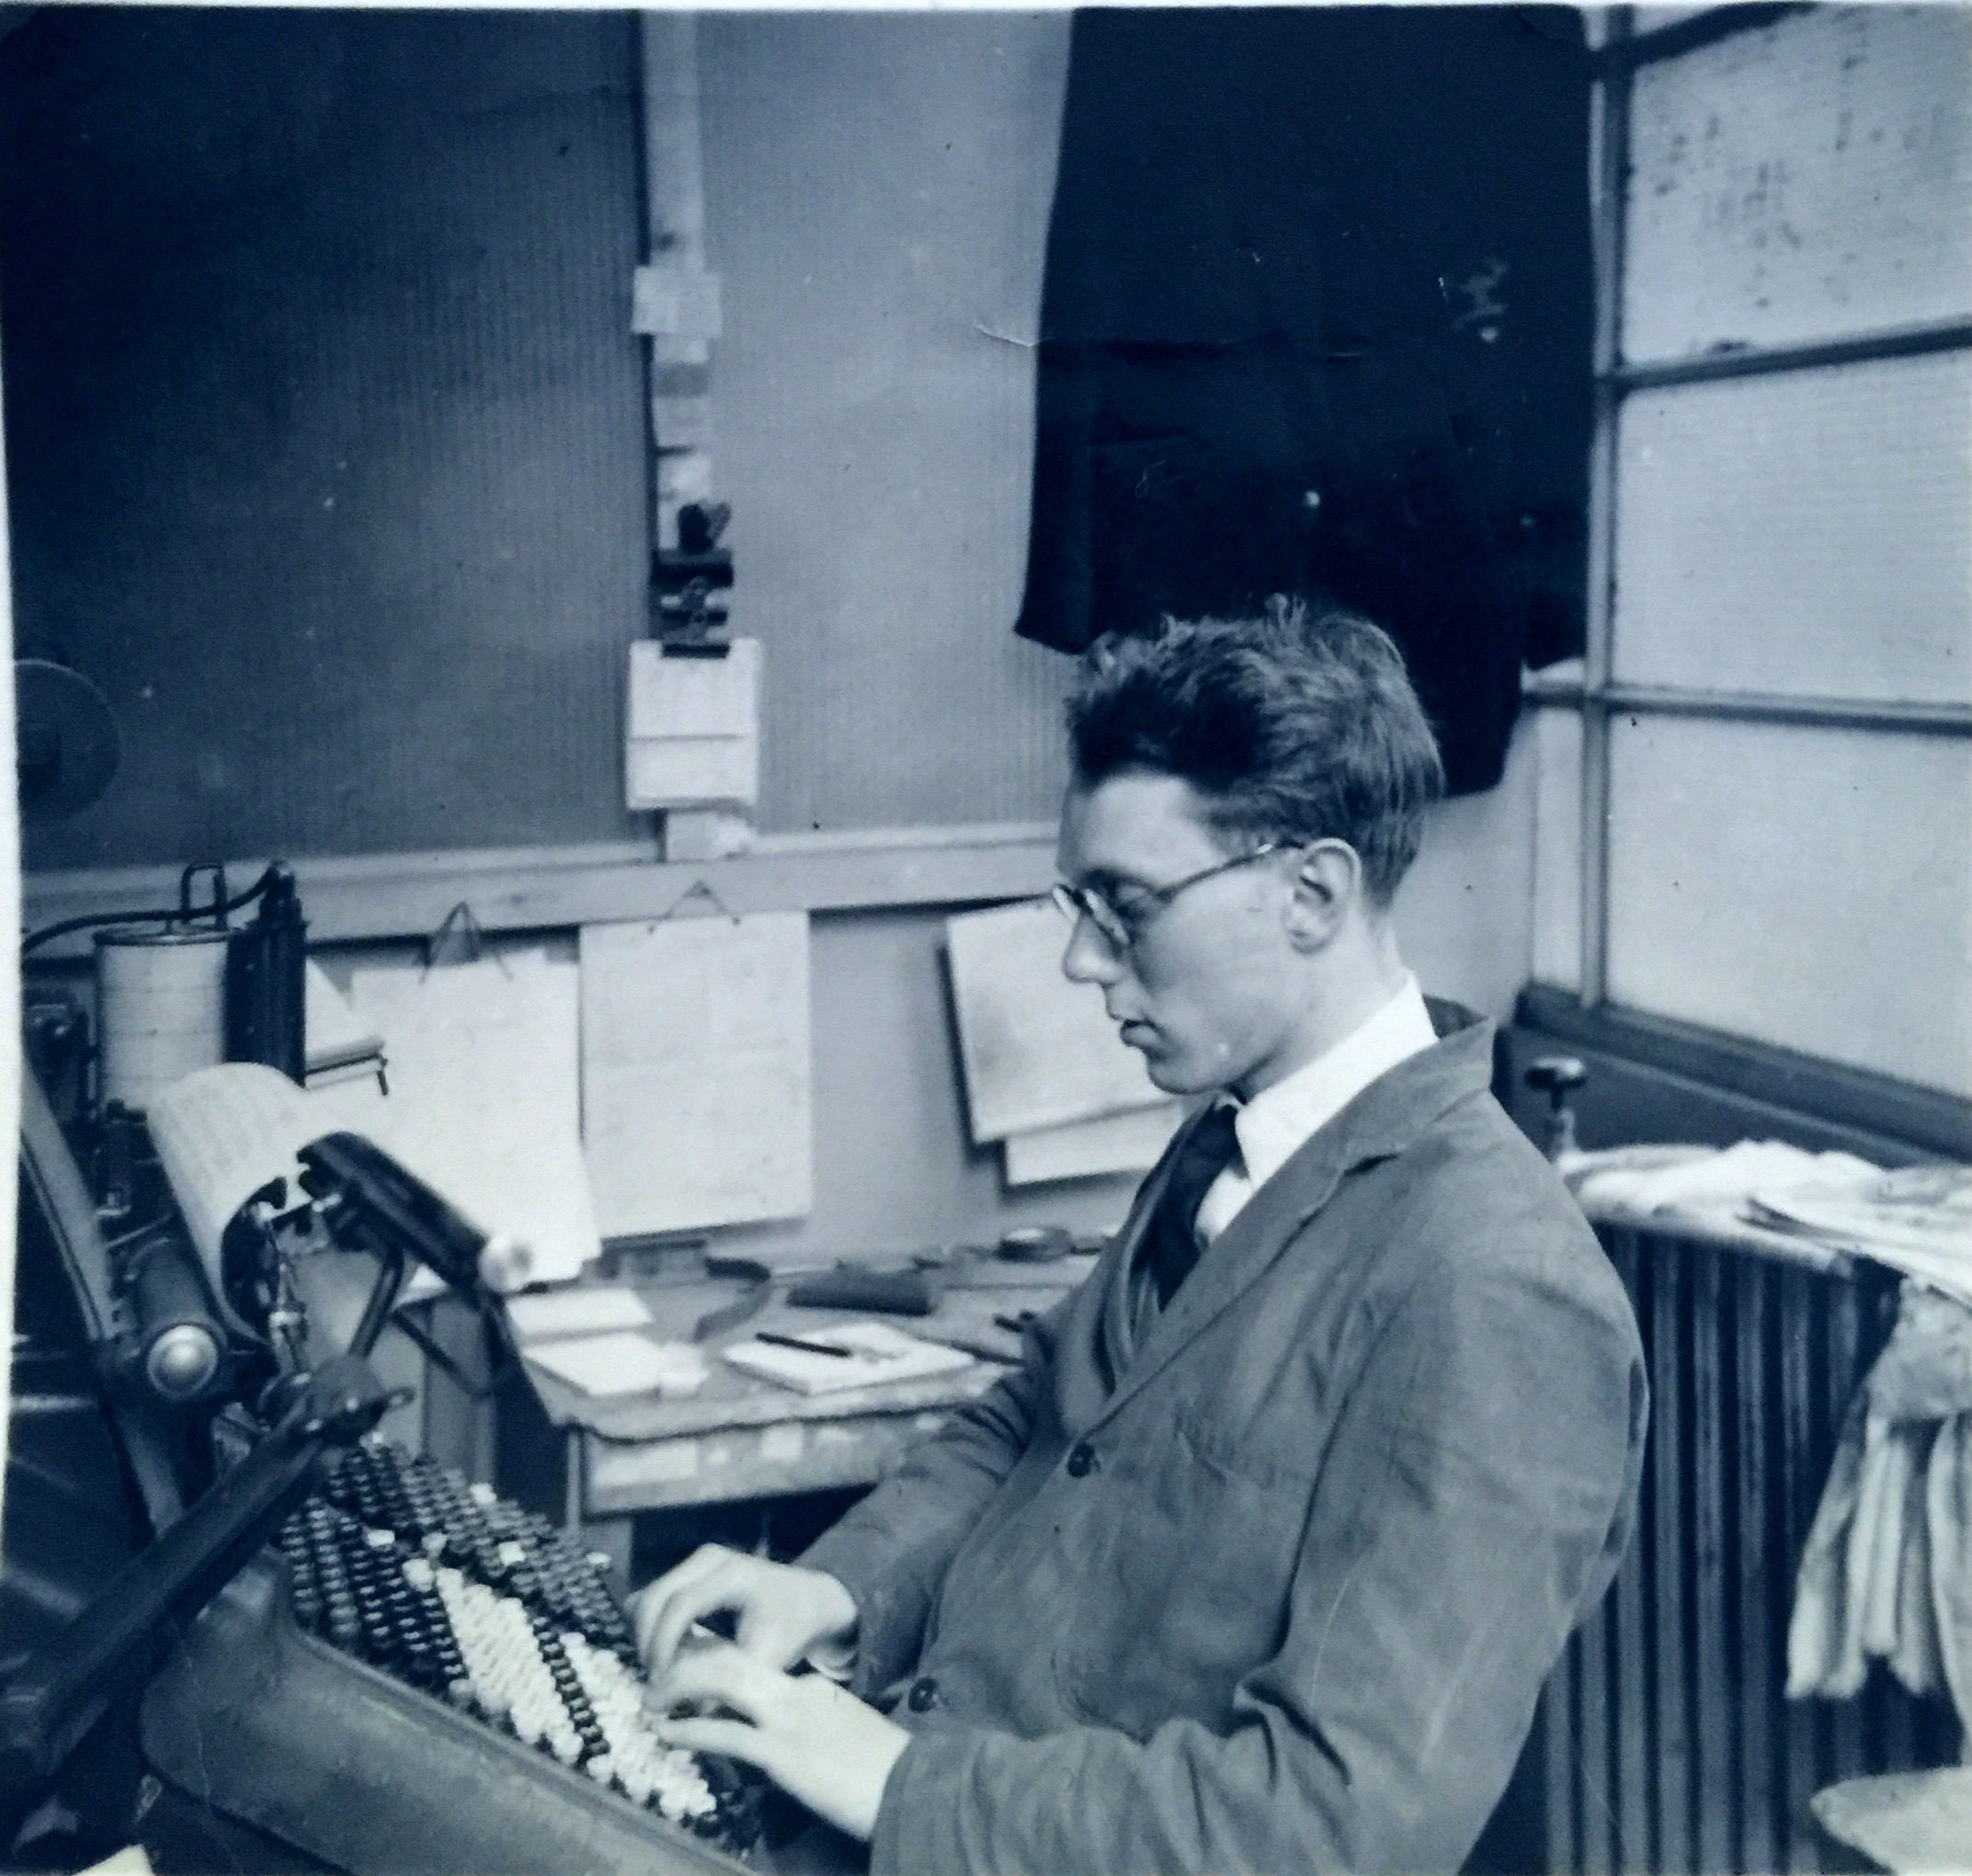 My father, John Rogers (1932-2004) aged 21 first job as a print compositor .